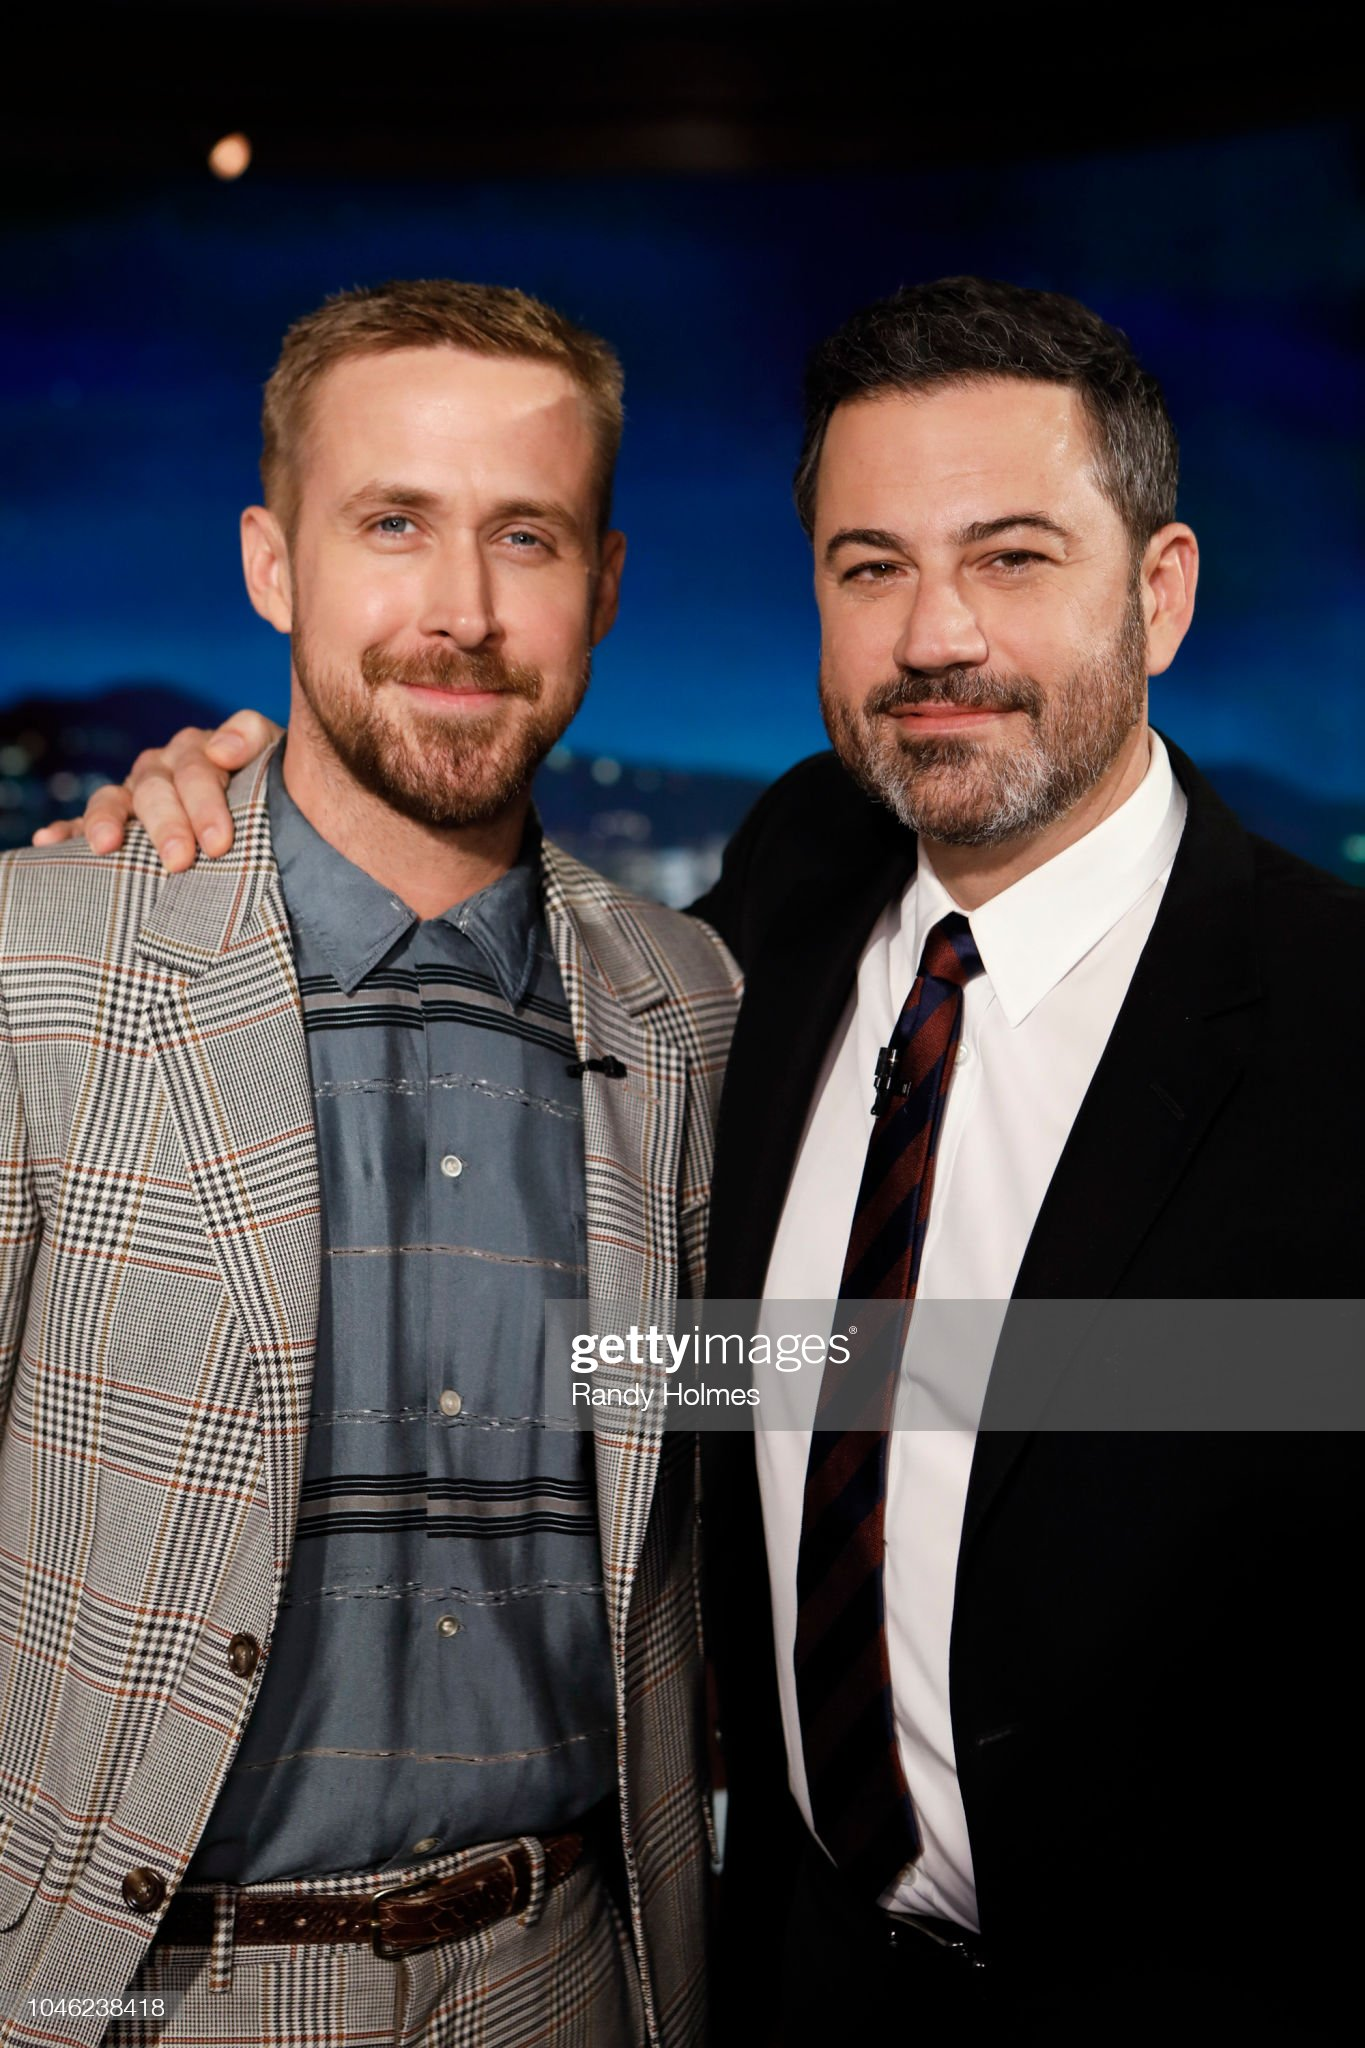 ¿Cuánto mide Ryan Gosling? - Altura - Real height Jimmy-kimmel-live-airs-every-weeknight-at-1135-pm-edt-and-features-a-picture-id1046238418?s=2048x2048